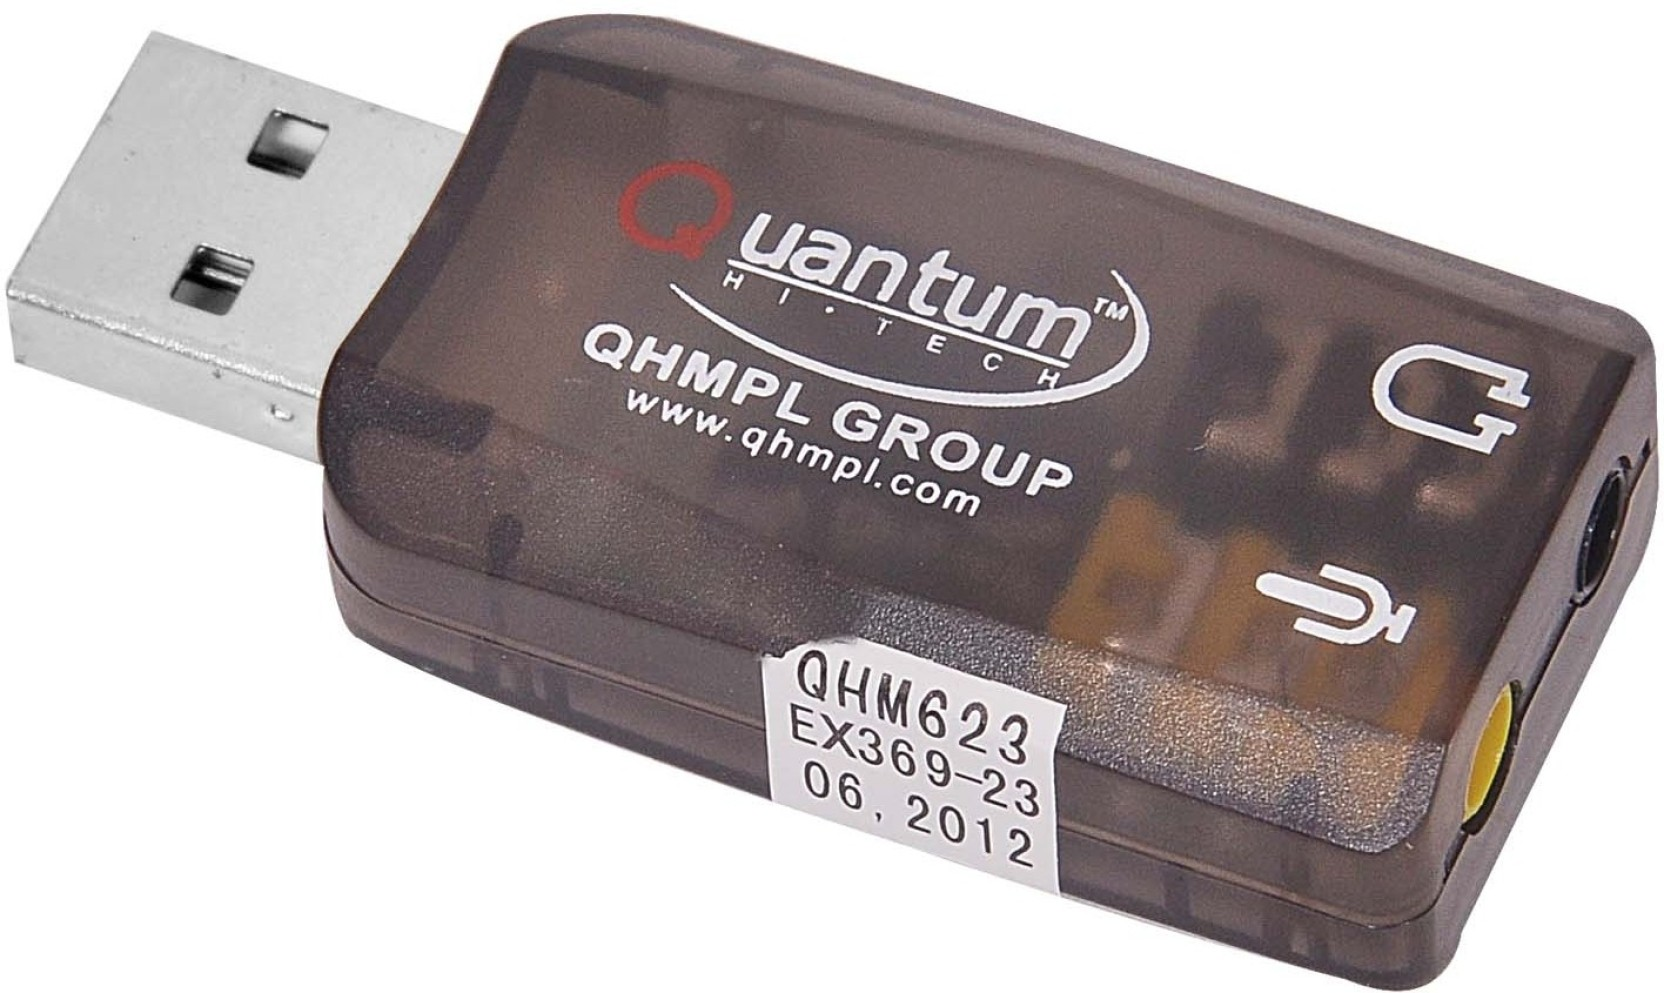 Quantum Qhm 623 Sound Card Price In India Buy Usb Soundcard Steel 5hv2 Virtual 71 Surround Add To Cart